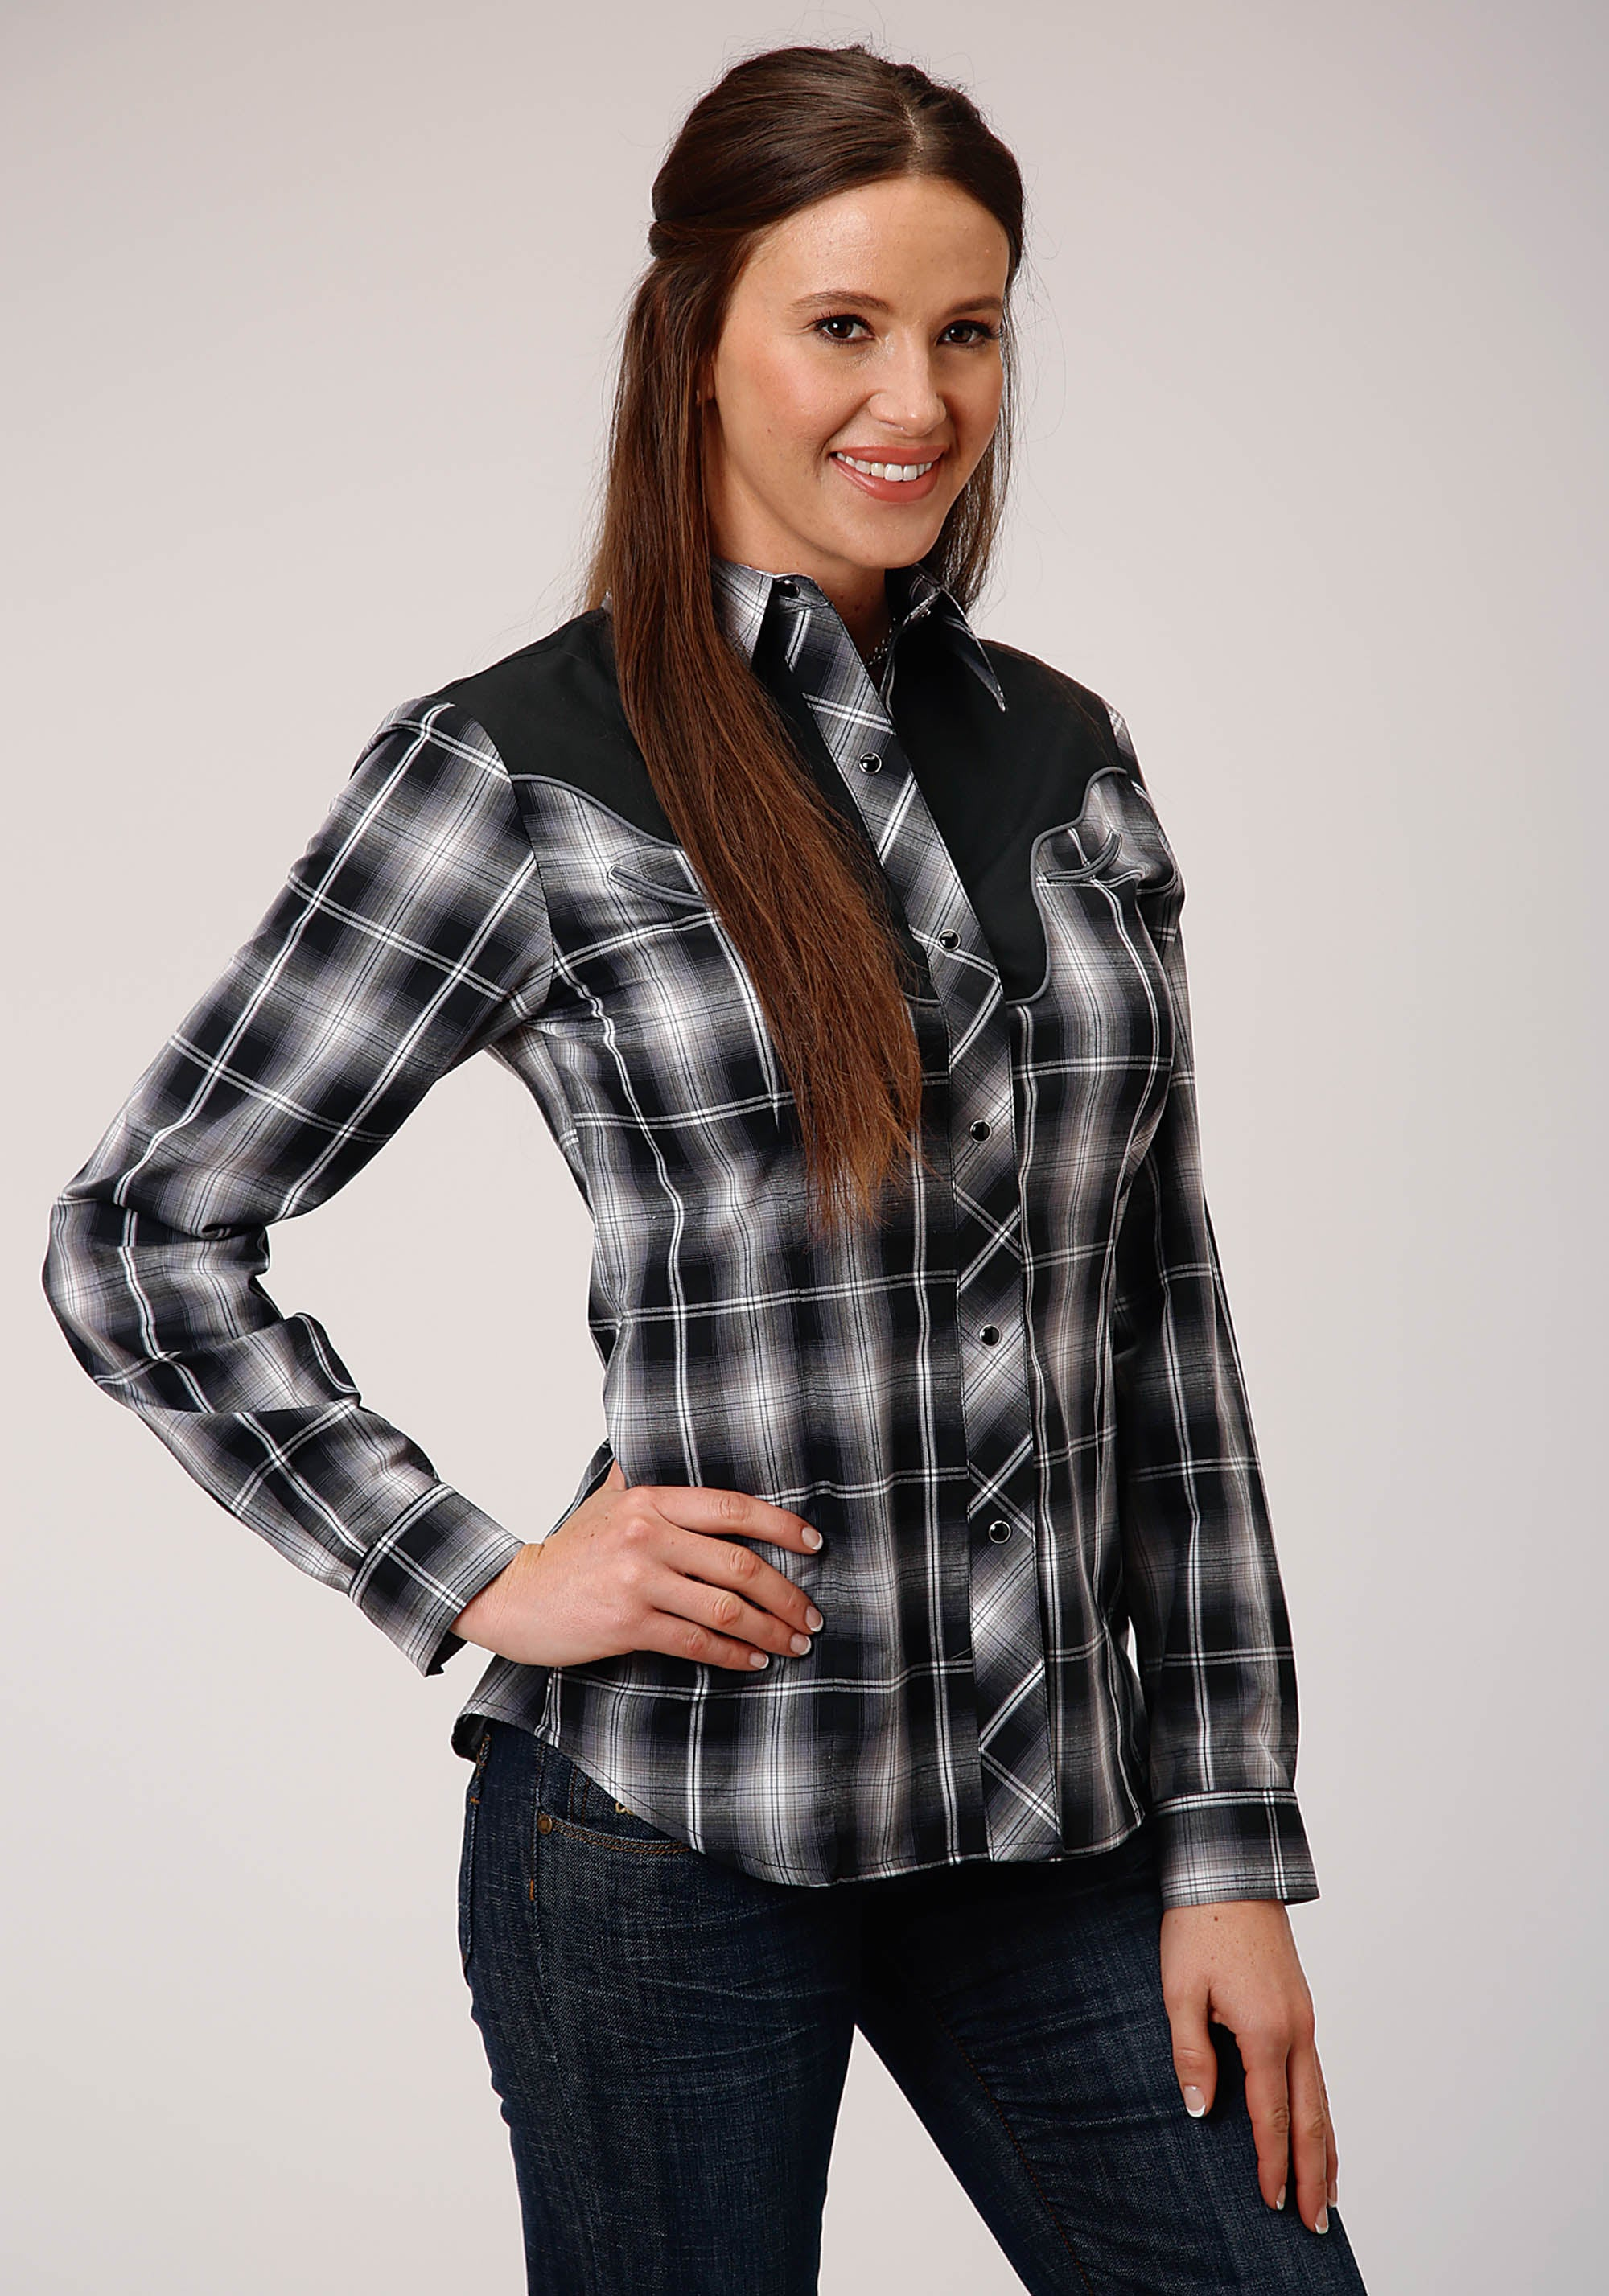 POLY COTTON WOMENS BLACK 00304 BLACK AND WHITE PLAID KARMAN SPECIAL STYLES